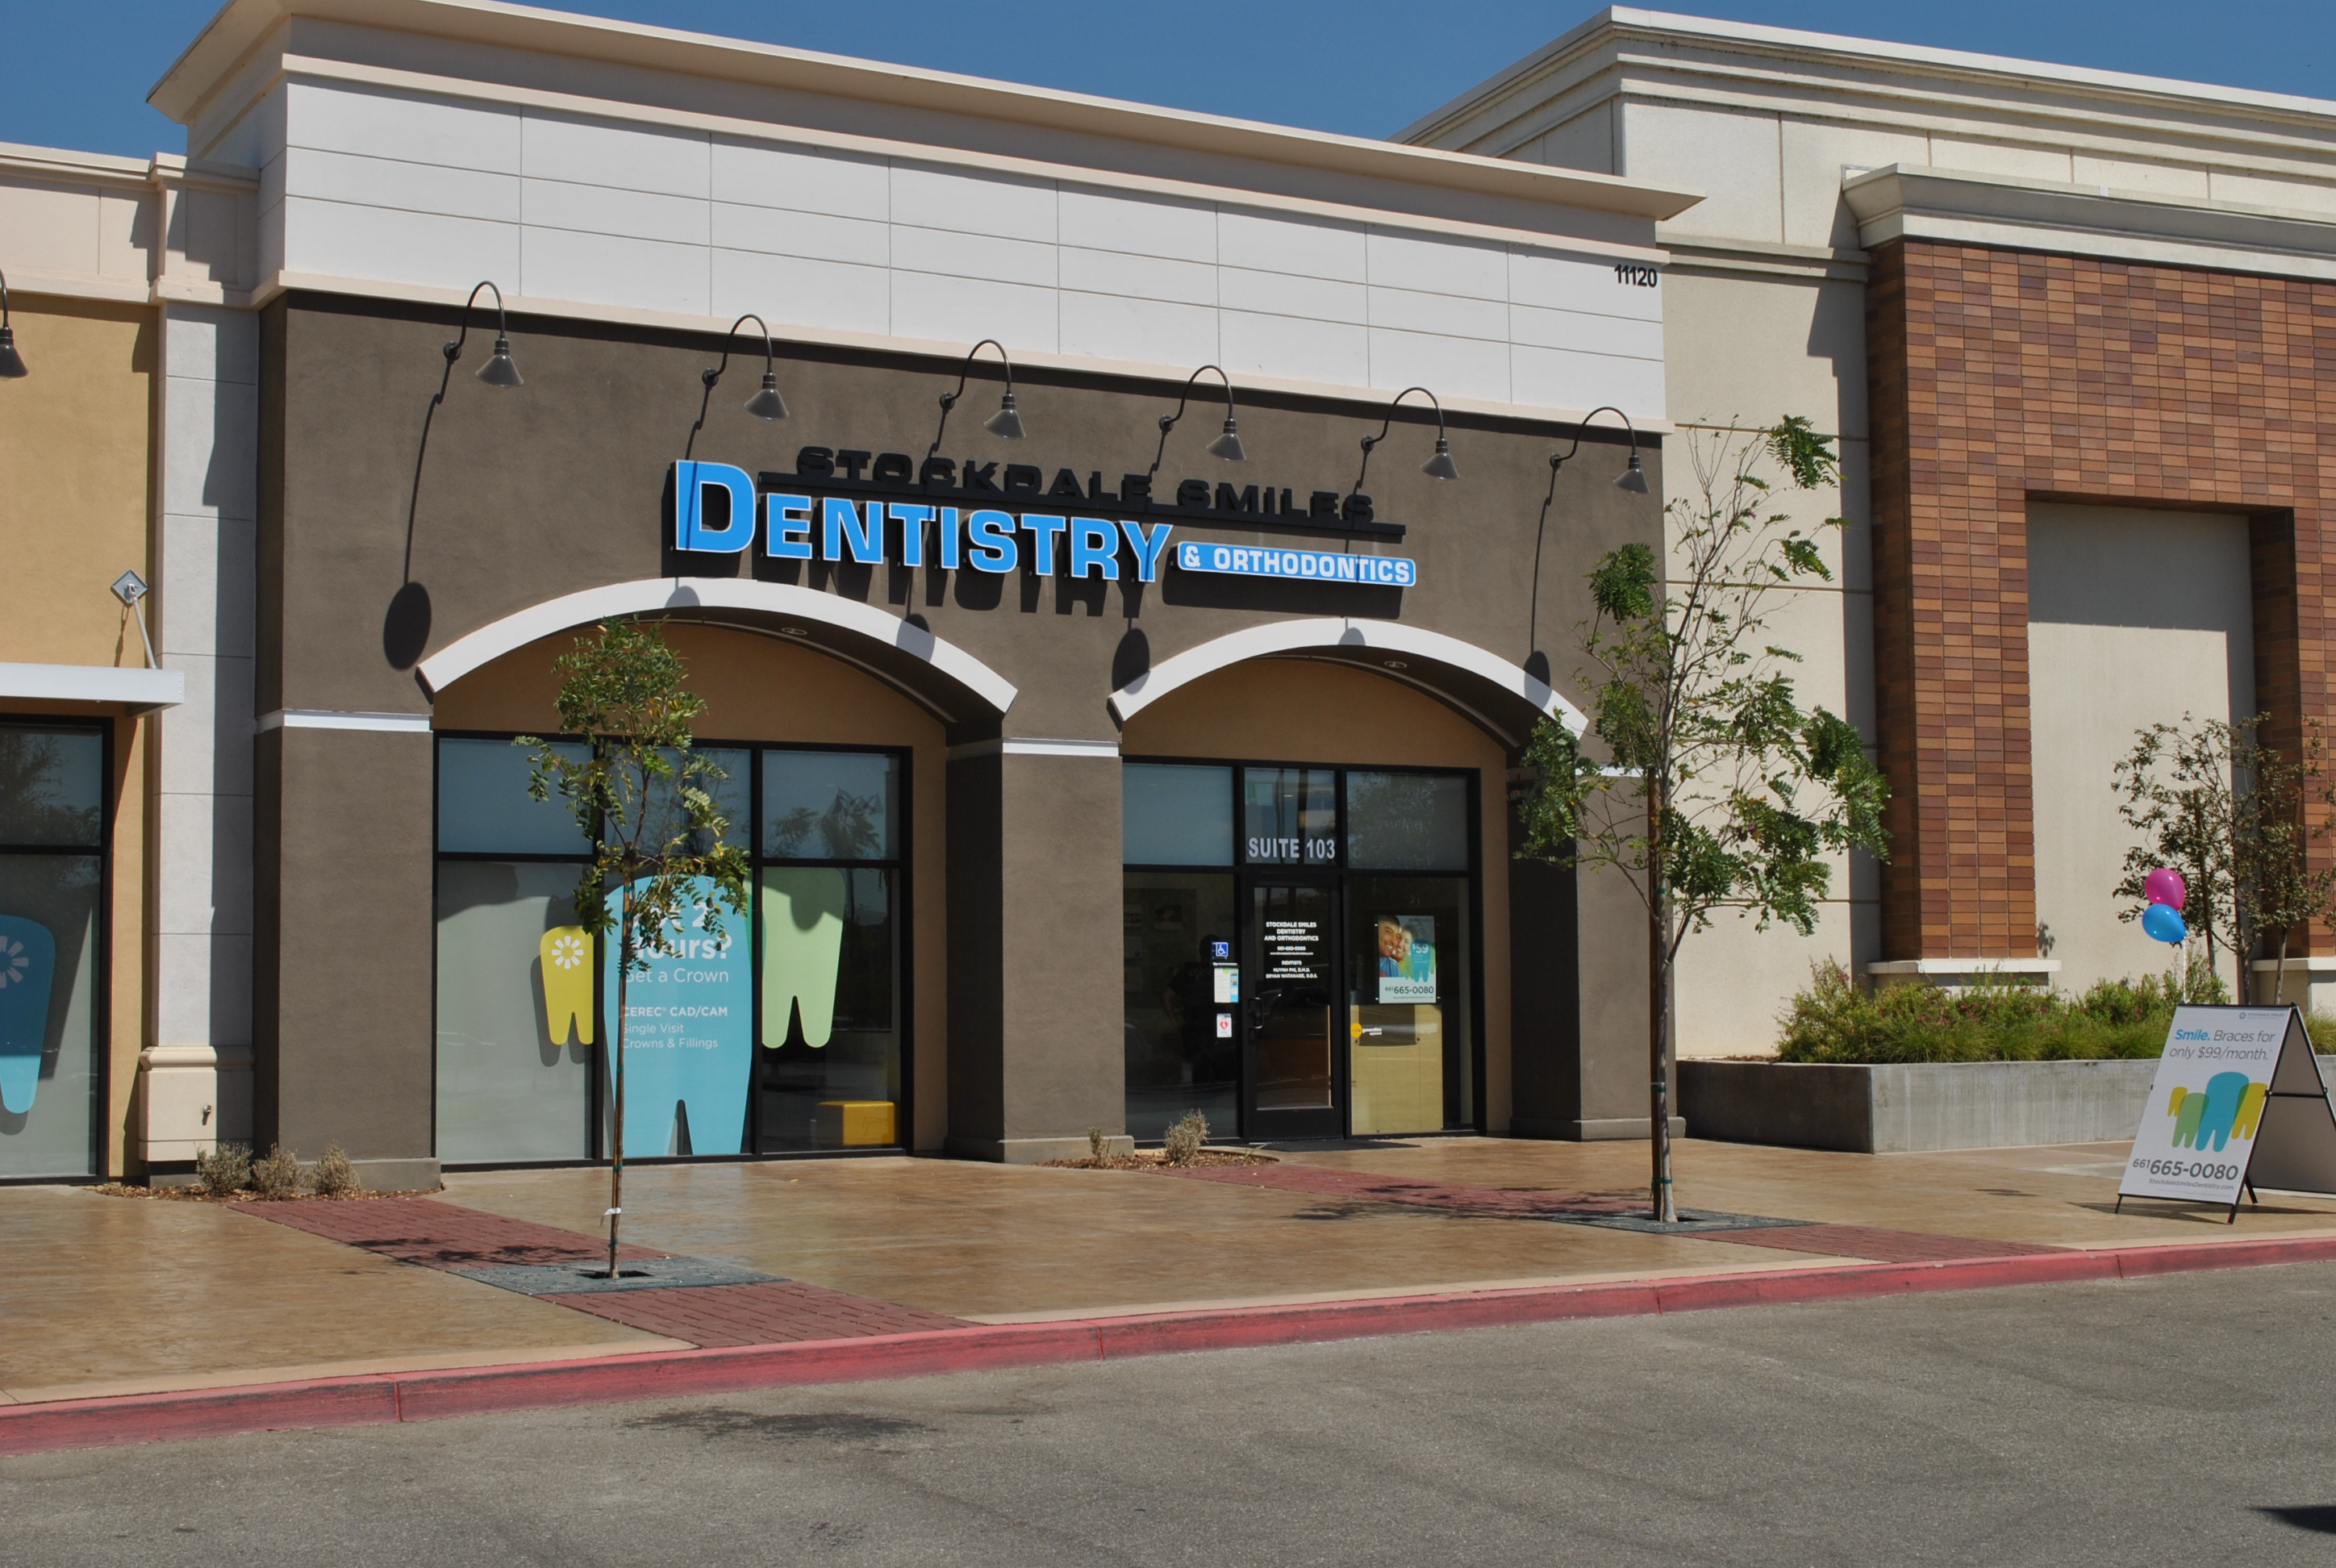 Stockdale Smiles Dentistry and Orthodontics image 1